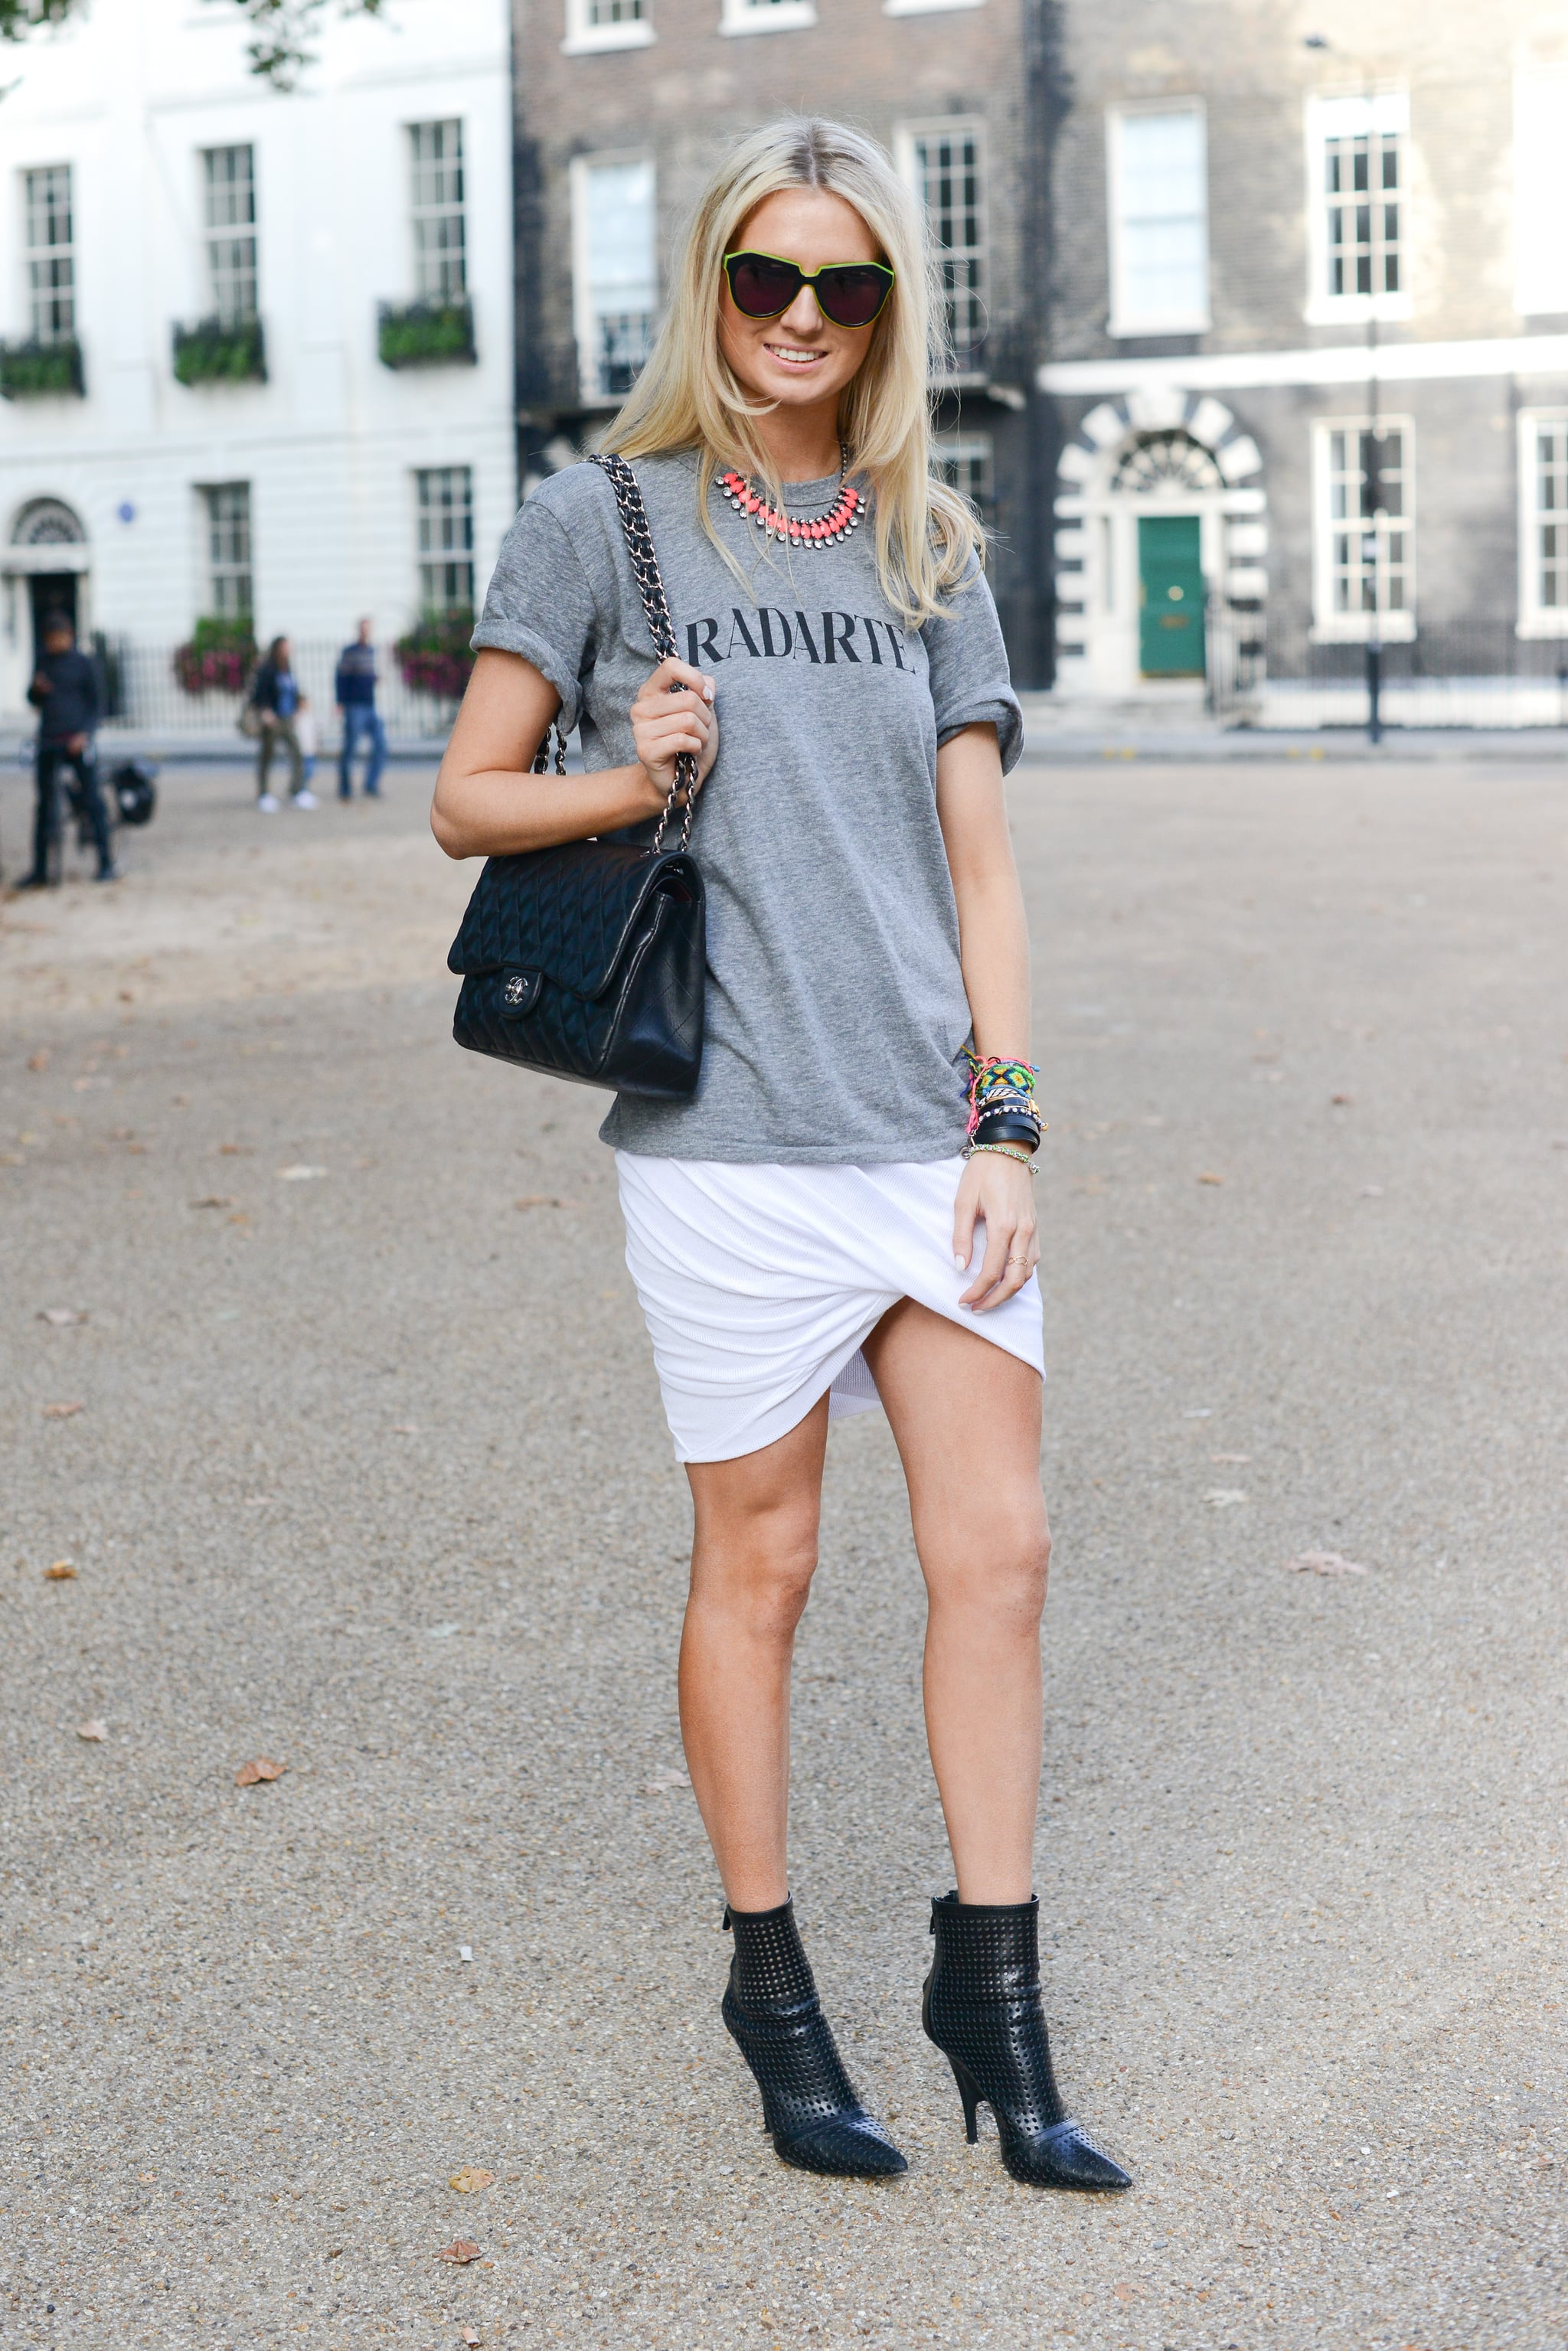 A quirky t-shirt got a dramatic skirt complement thanks to her white wrap iteration on bottom.